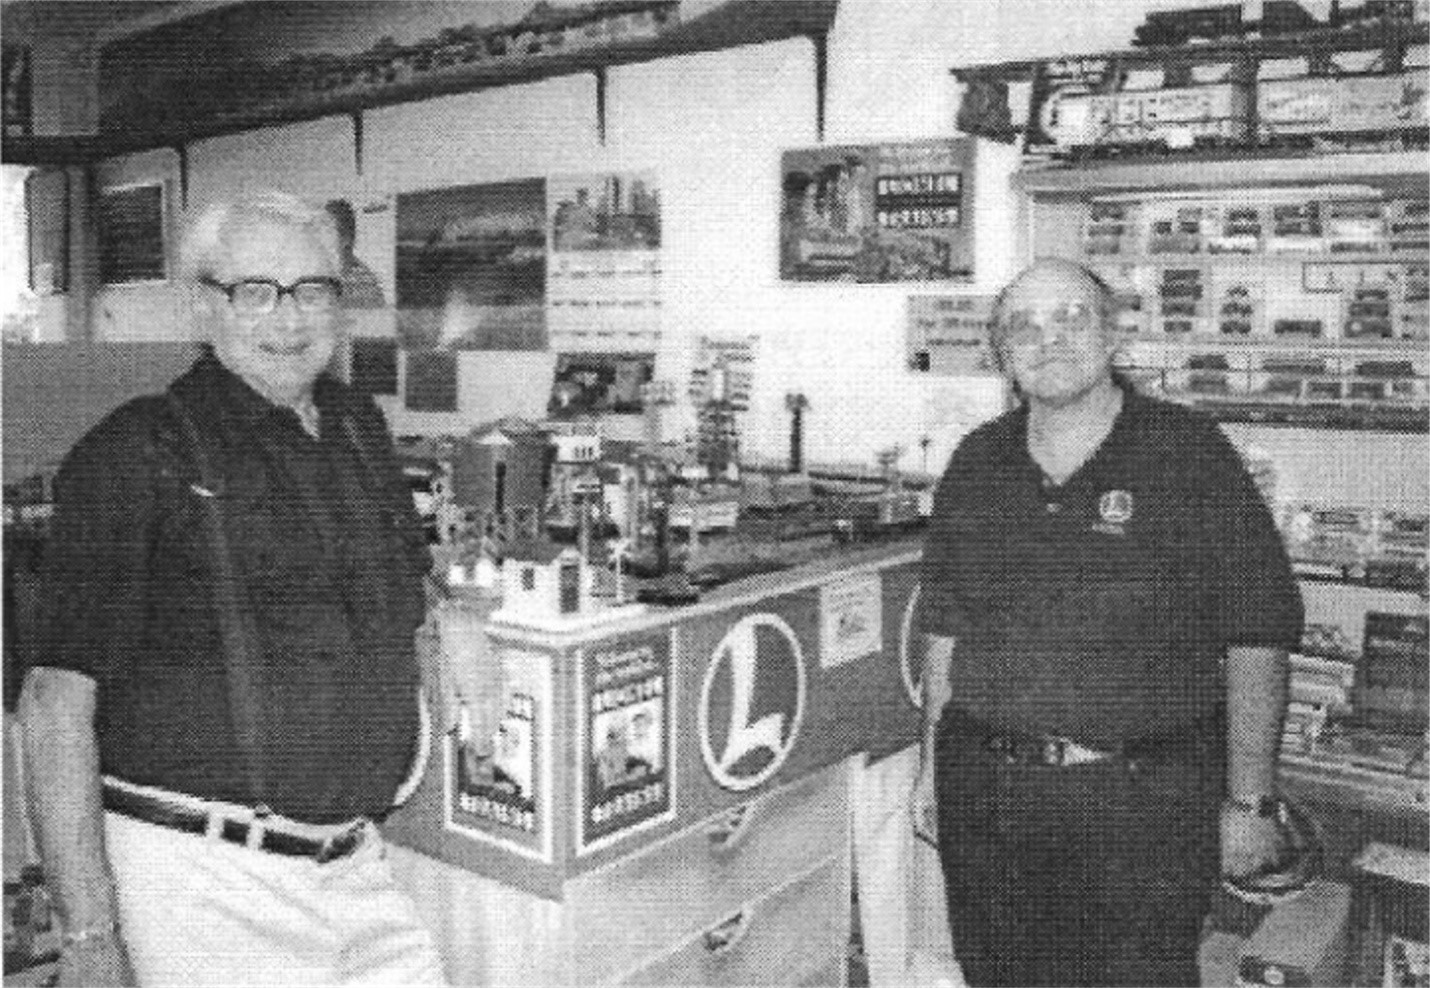 GREG PALMER AND WARREN HATCH AT THE NEW LOCATION OF THE TRAINS WEST HOBBY SHOP